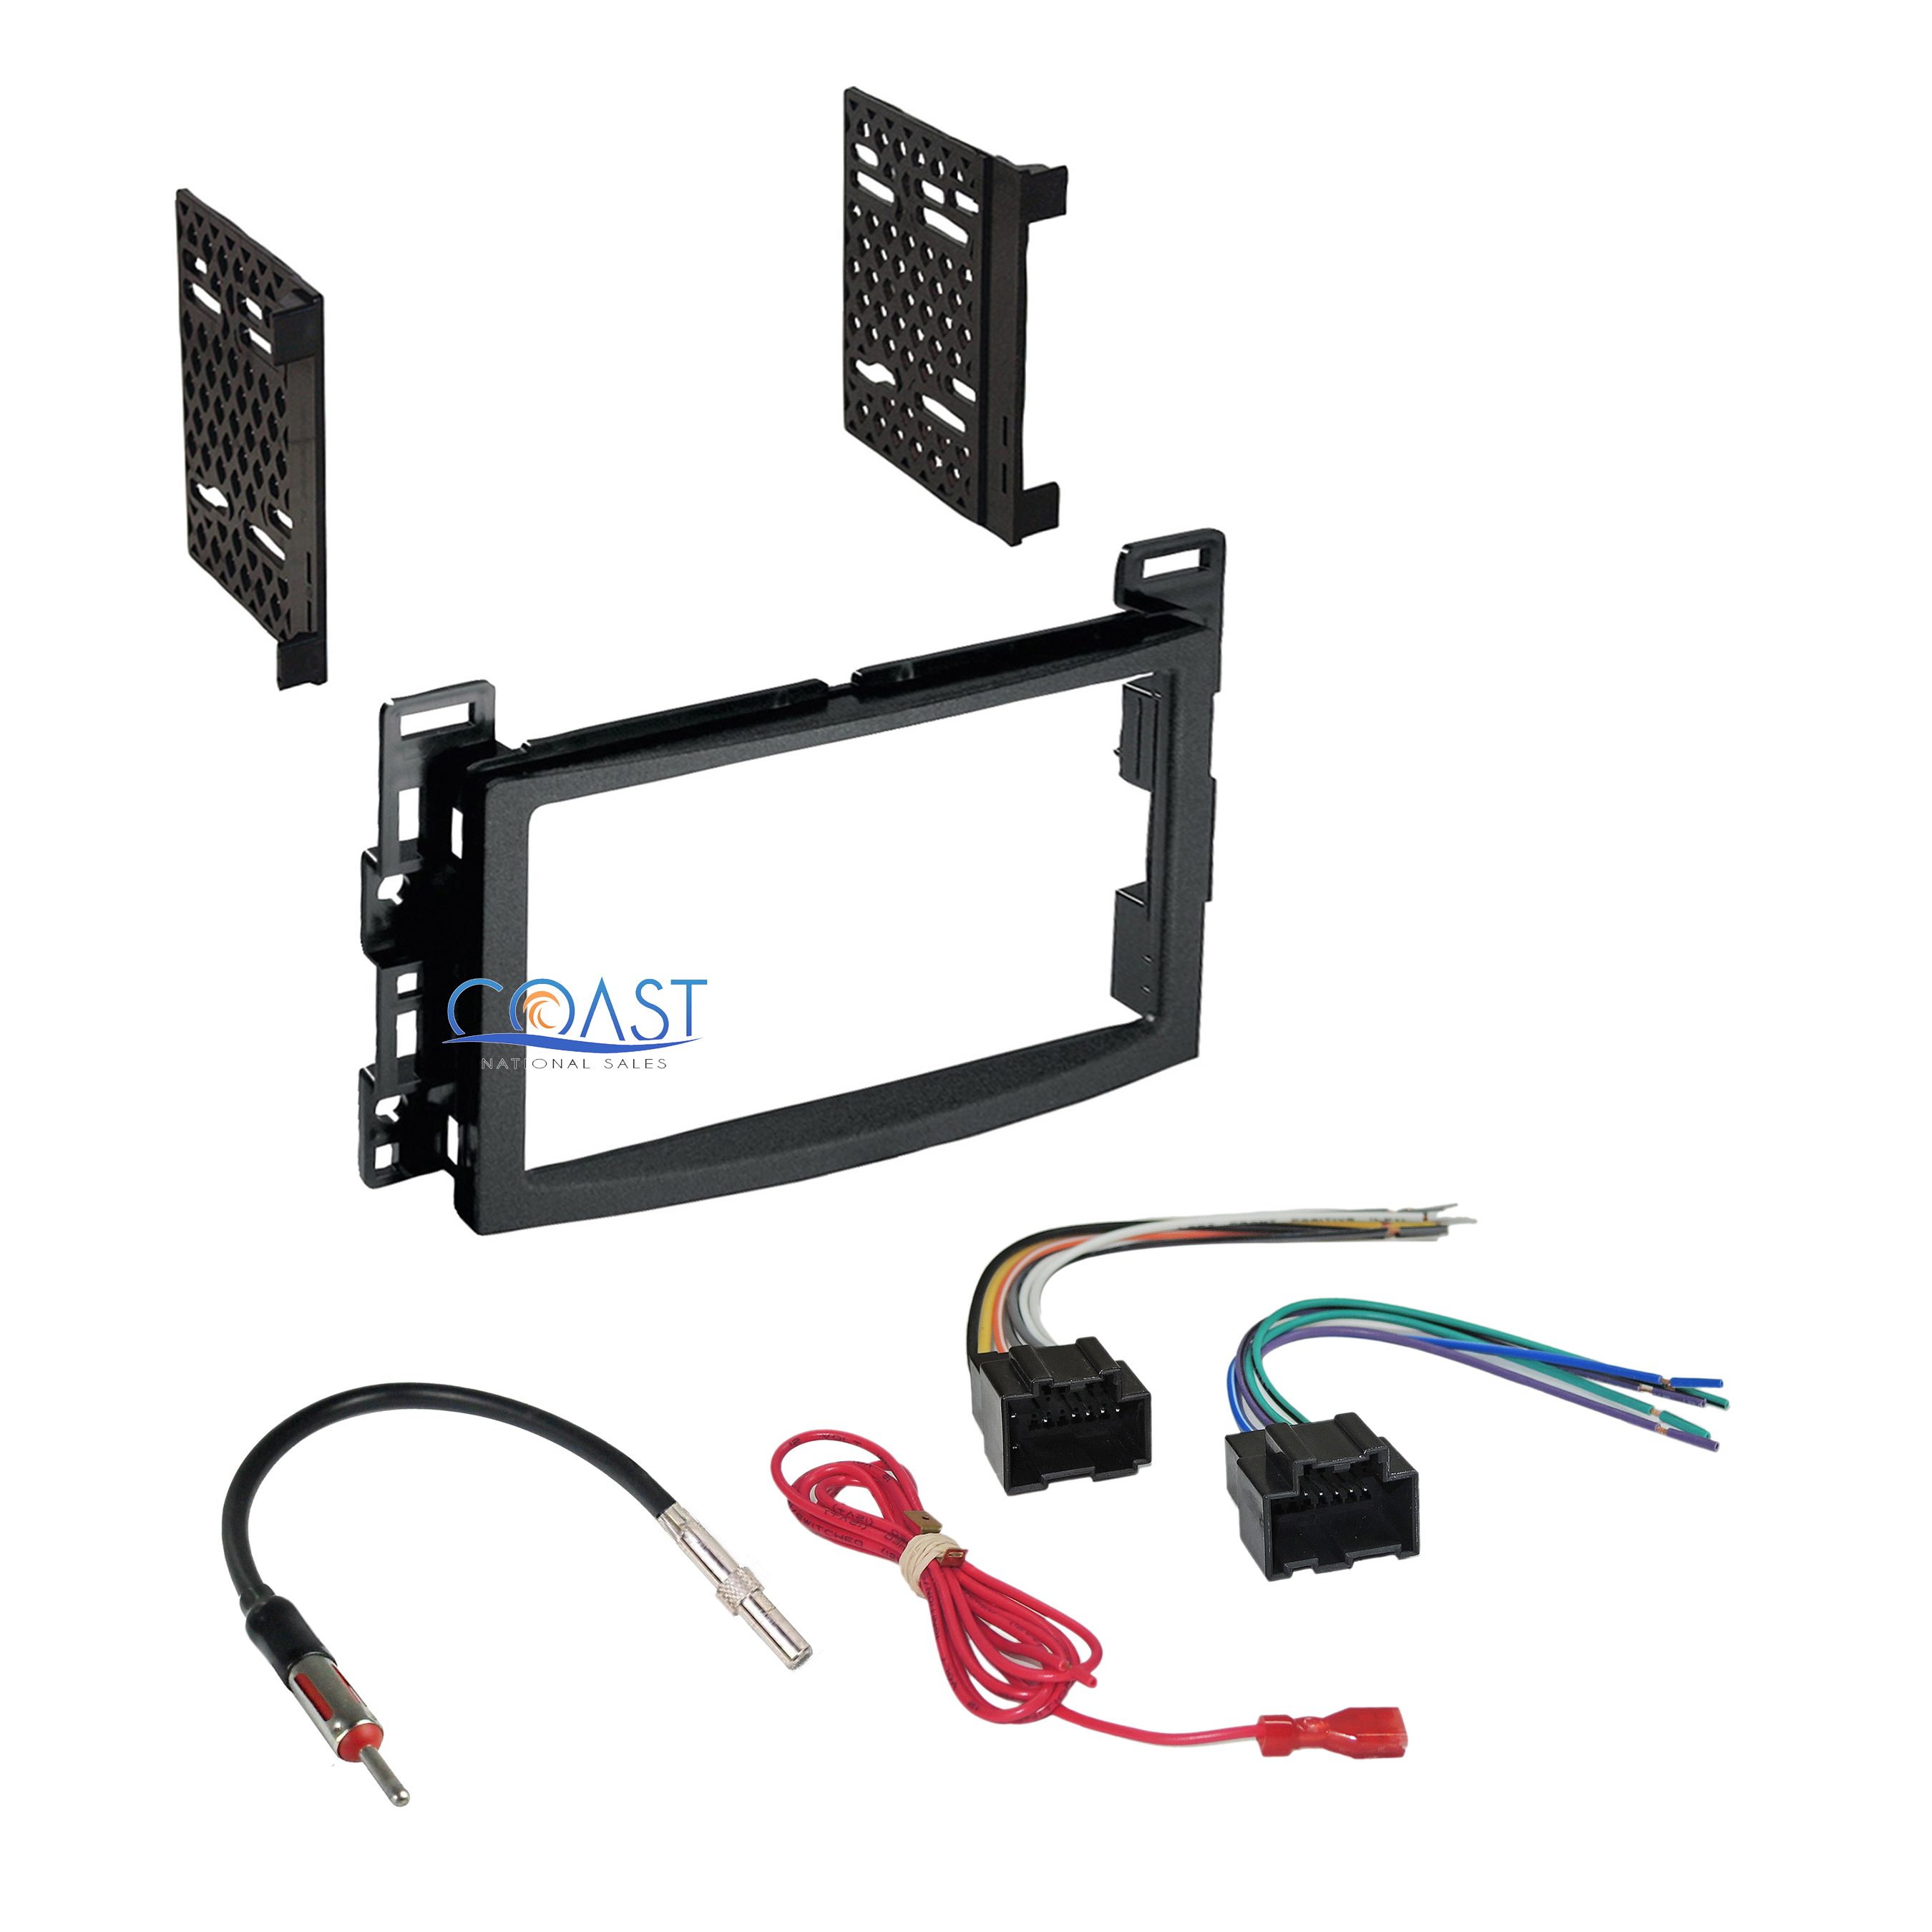 Direct Car Stereo Wiring Harness